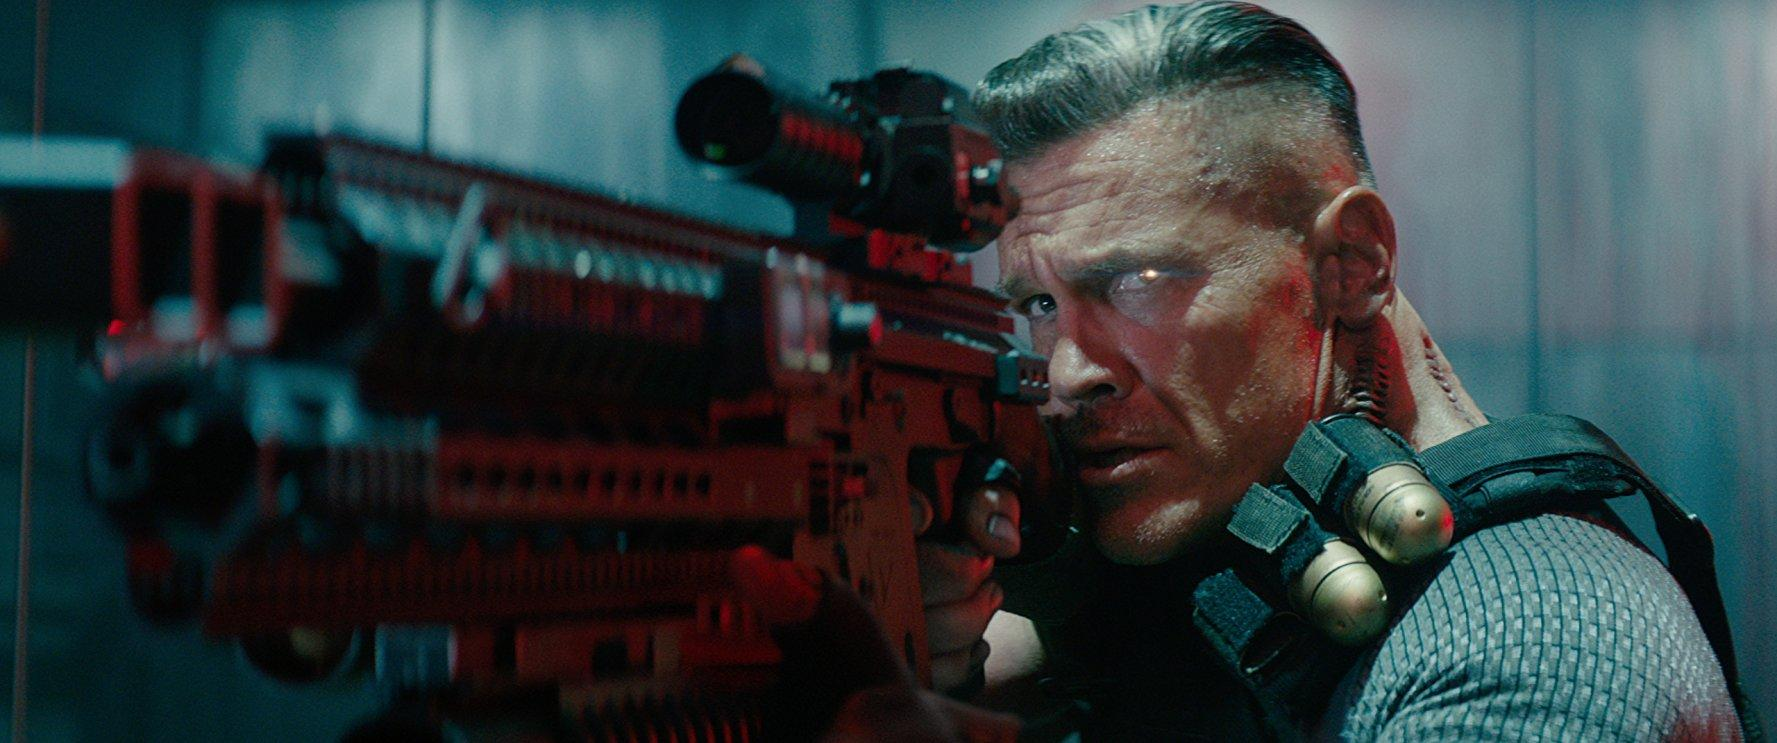 Josh Brolin as Cable.